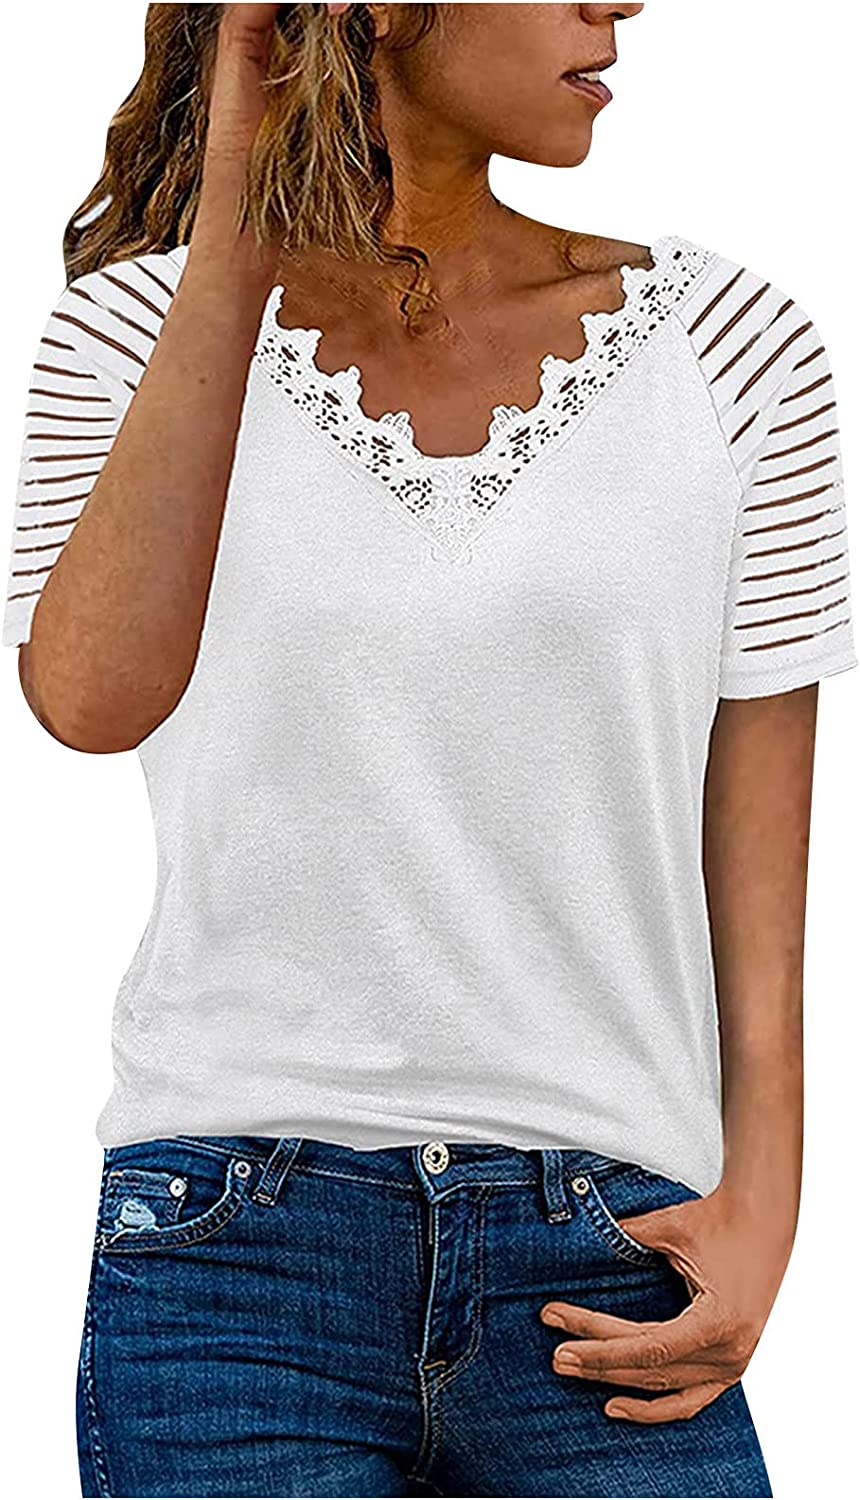 Women's Solid V-neck Fort Worth Mall Max 43% OFF loose solid Short Sleeve Top color